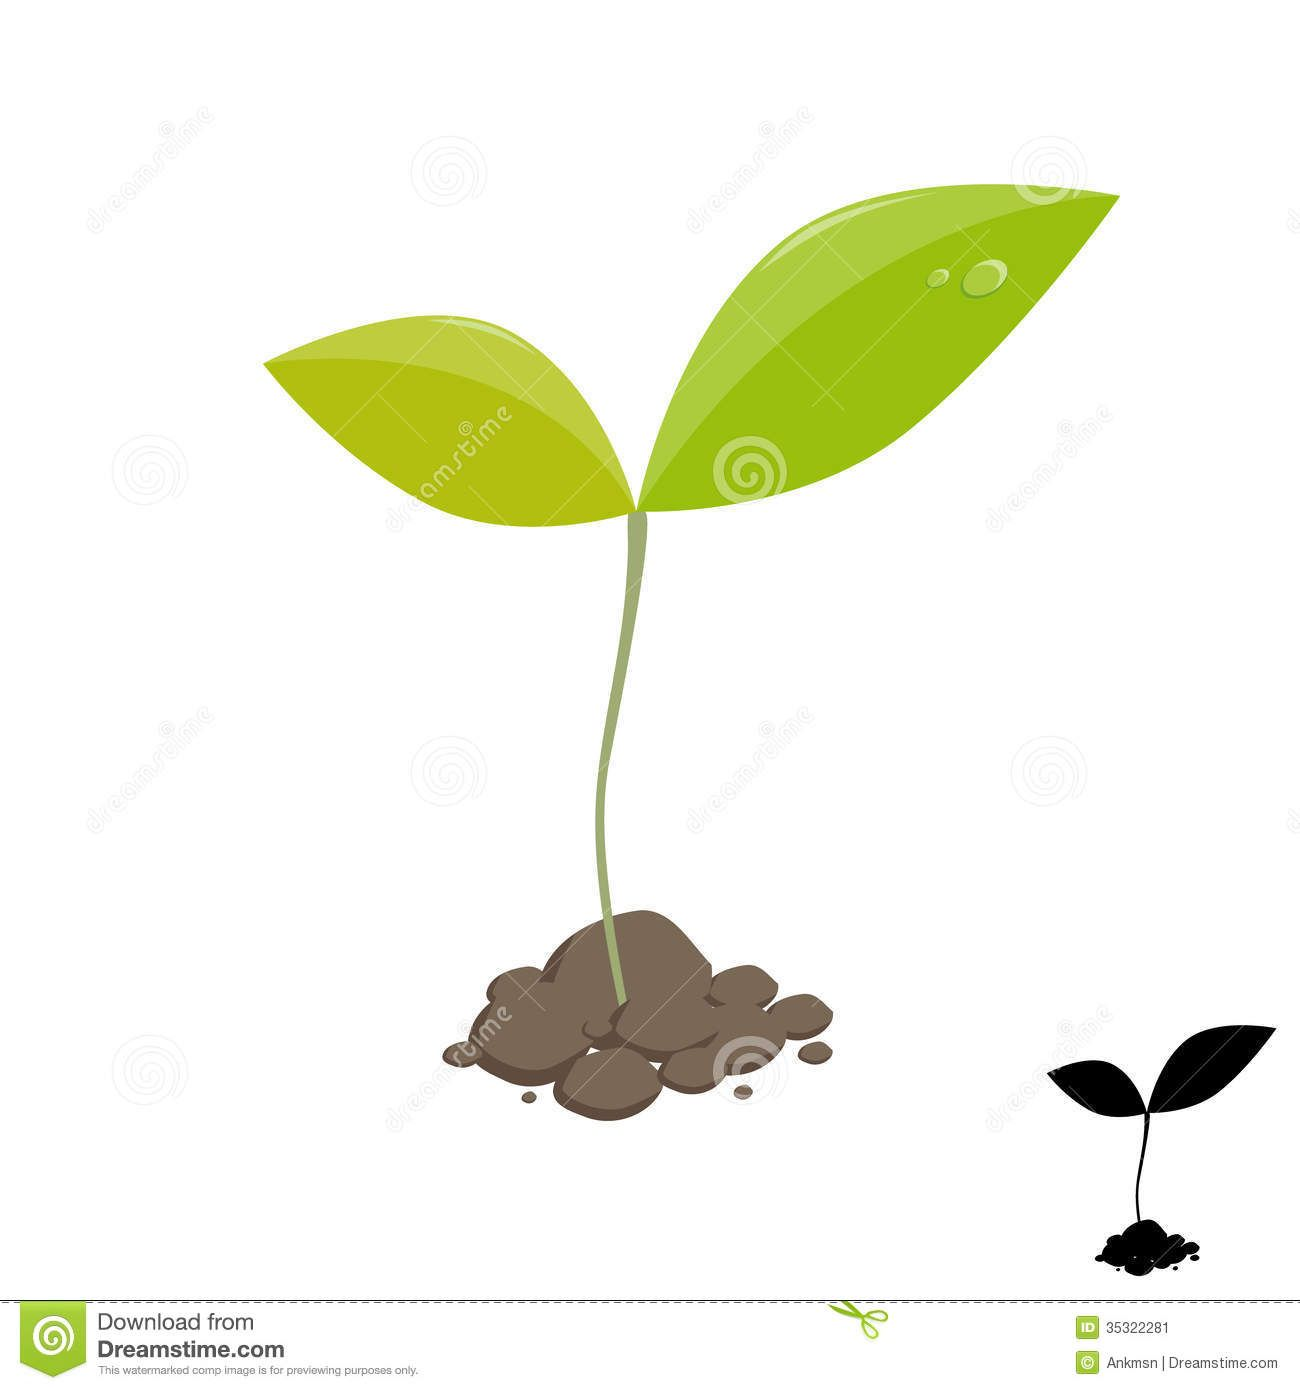 Clipart sprouts picture transparent download Sprouting Seed Clipart Little Plant Sprout Stock - Clipart Kid ... picture transparent download